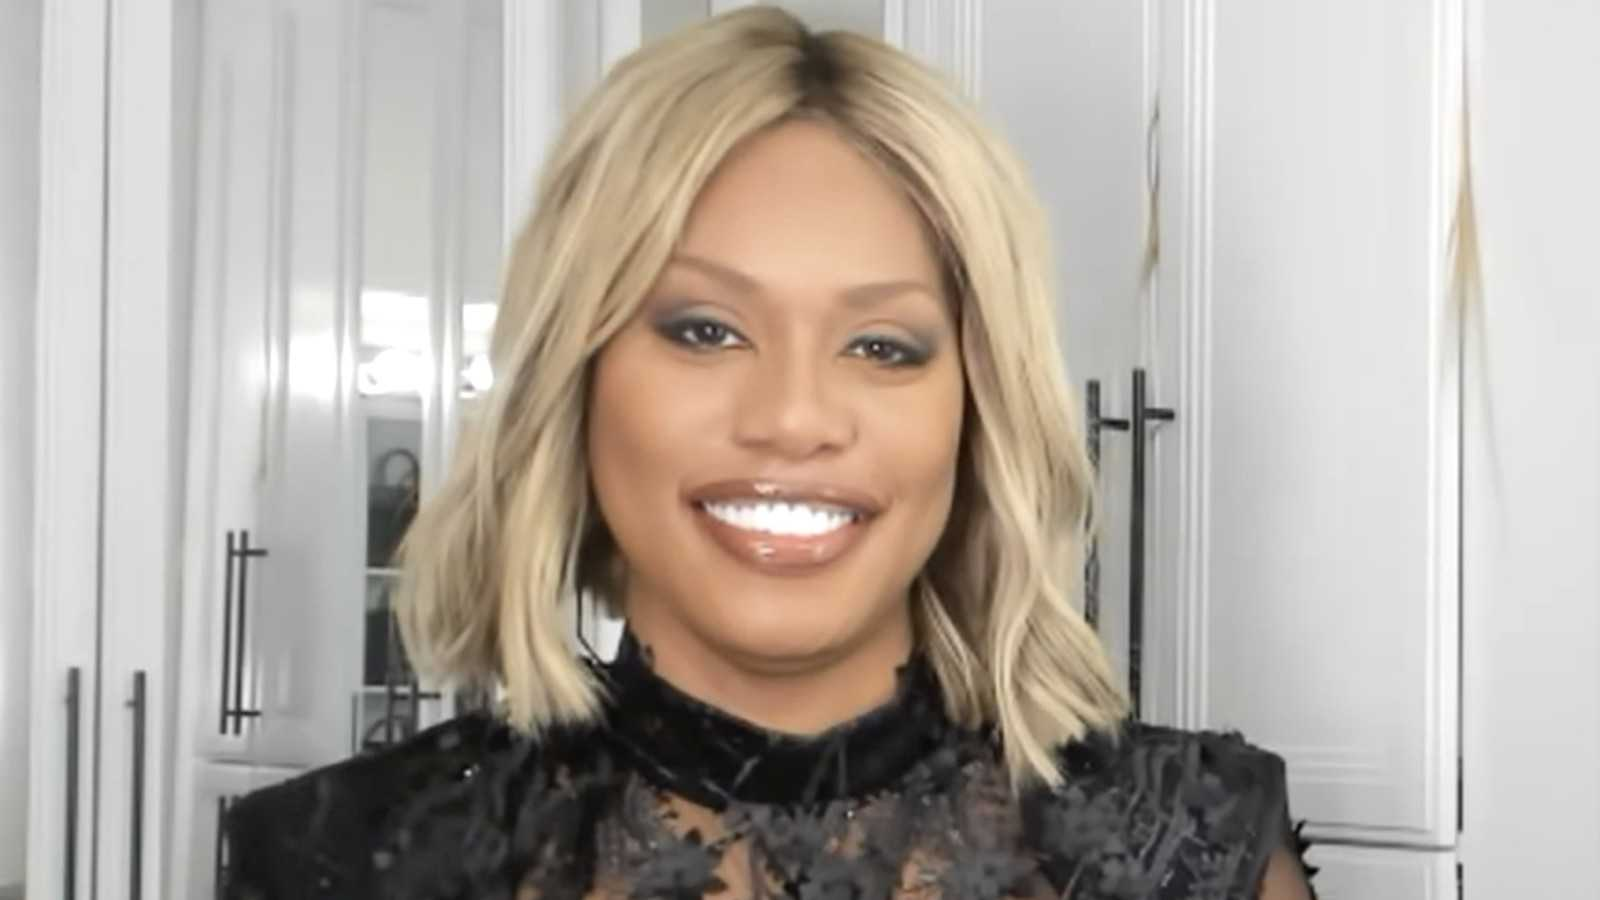 Laverne Cox is a trans actress that has done much for the LGBTQ community in her work